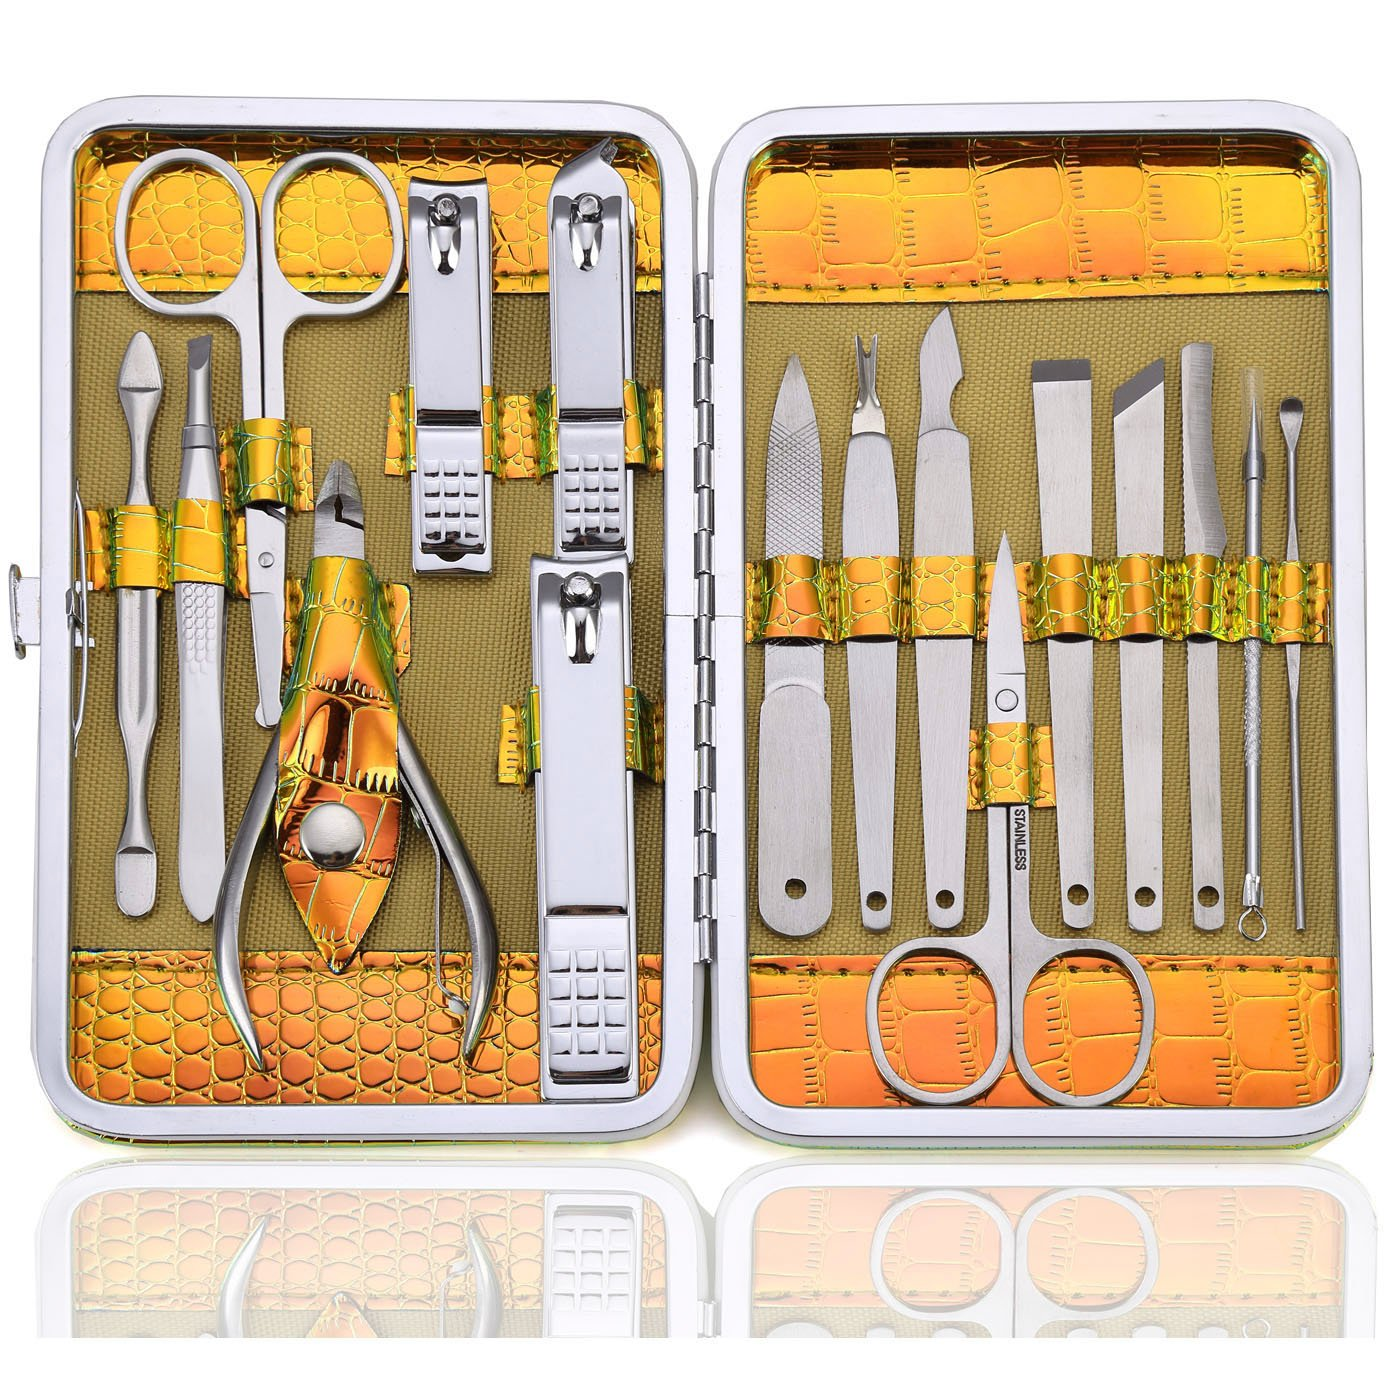 Manicure Set Nail Grooming Kit - Professional Nail Clipper Pedicure Tools 16pcs for Travel with Delicate Case for Men and Women (Gold)